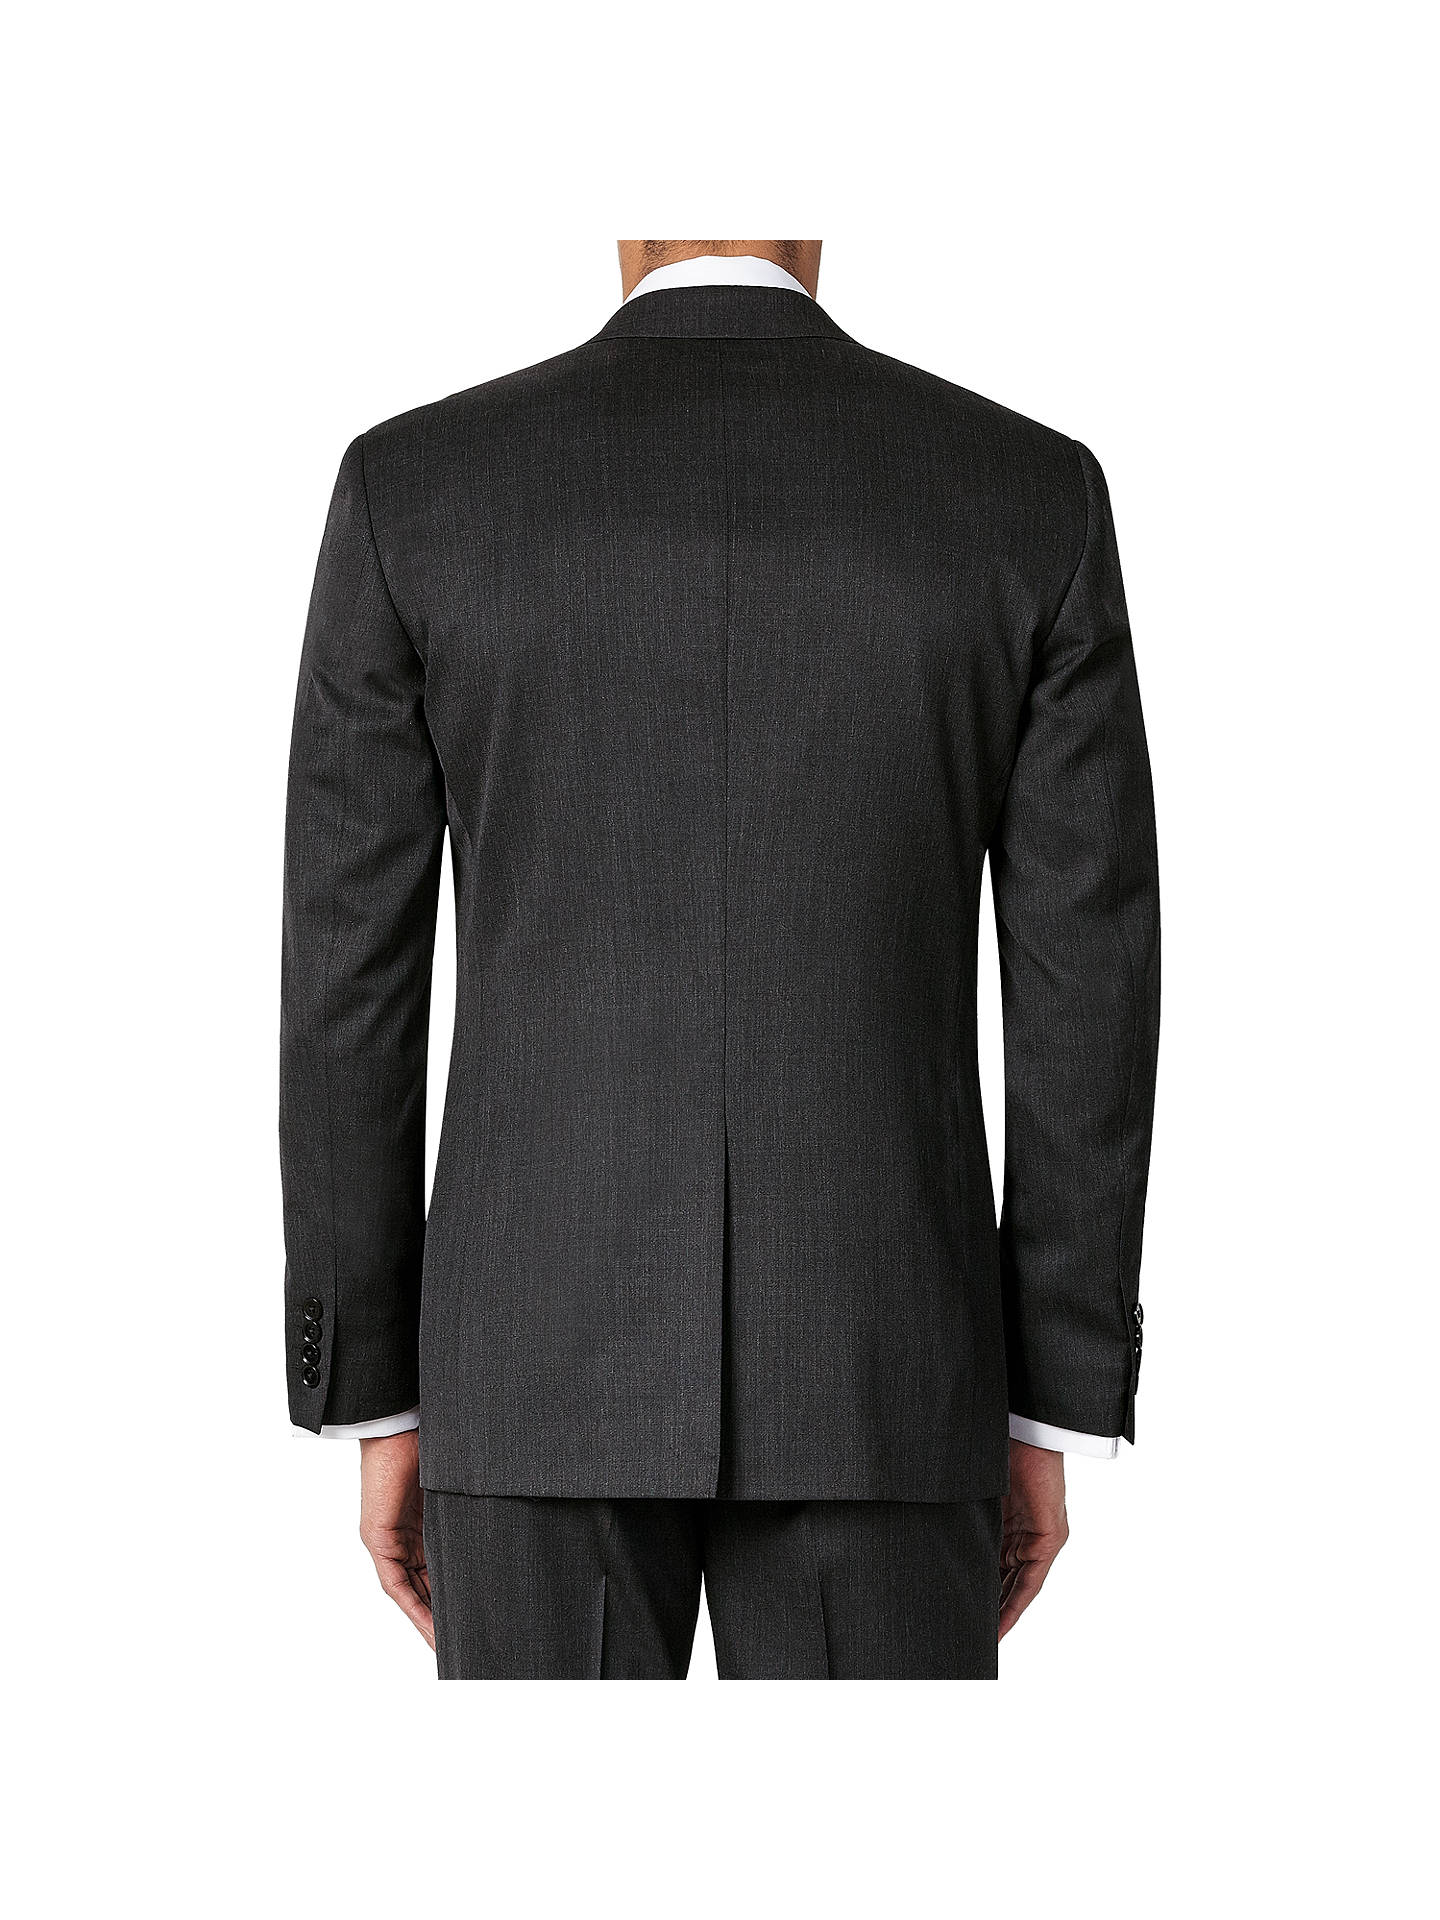 BuyJohn Lewis & Partners Washable Tailored Suit Jacket, Charcoal, 48R Online at johnlewis.com